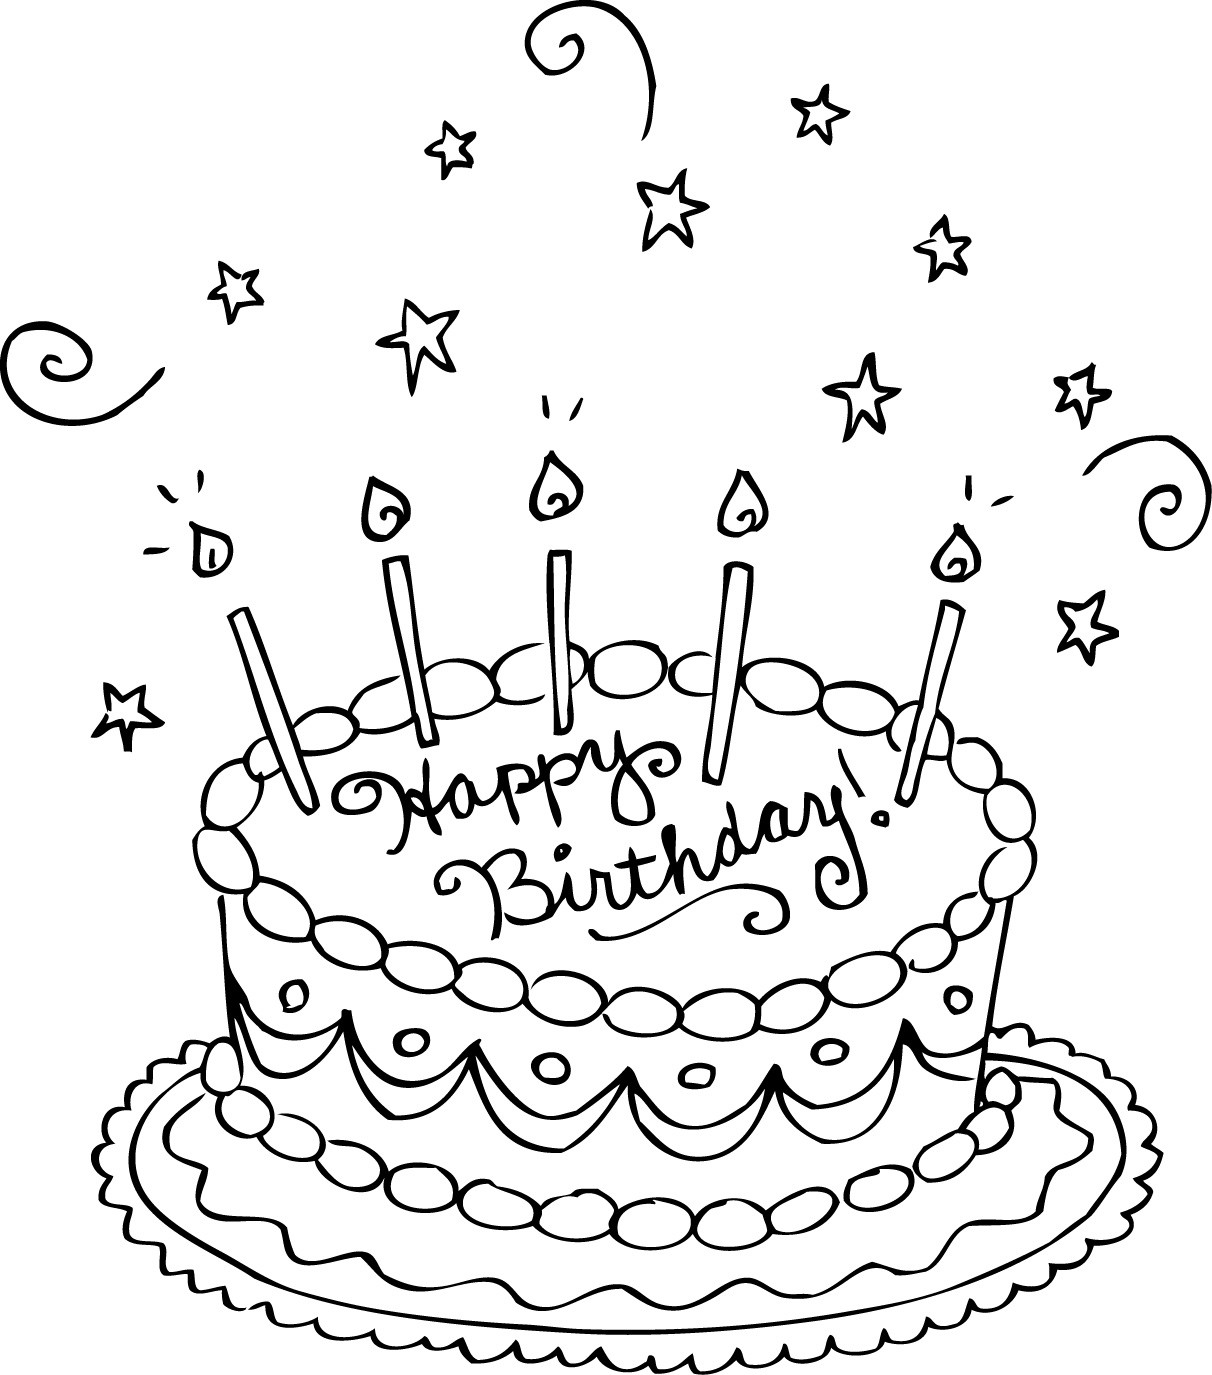 Best ideas about Coloring Sheets For Girls The Birthday . Save or Pin Free Printable Birthday Cake Coloring Pages For Kids Now.